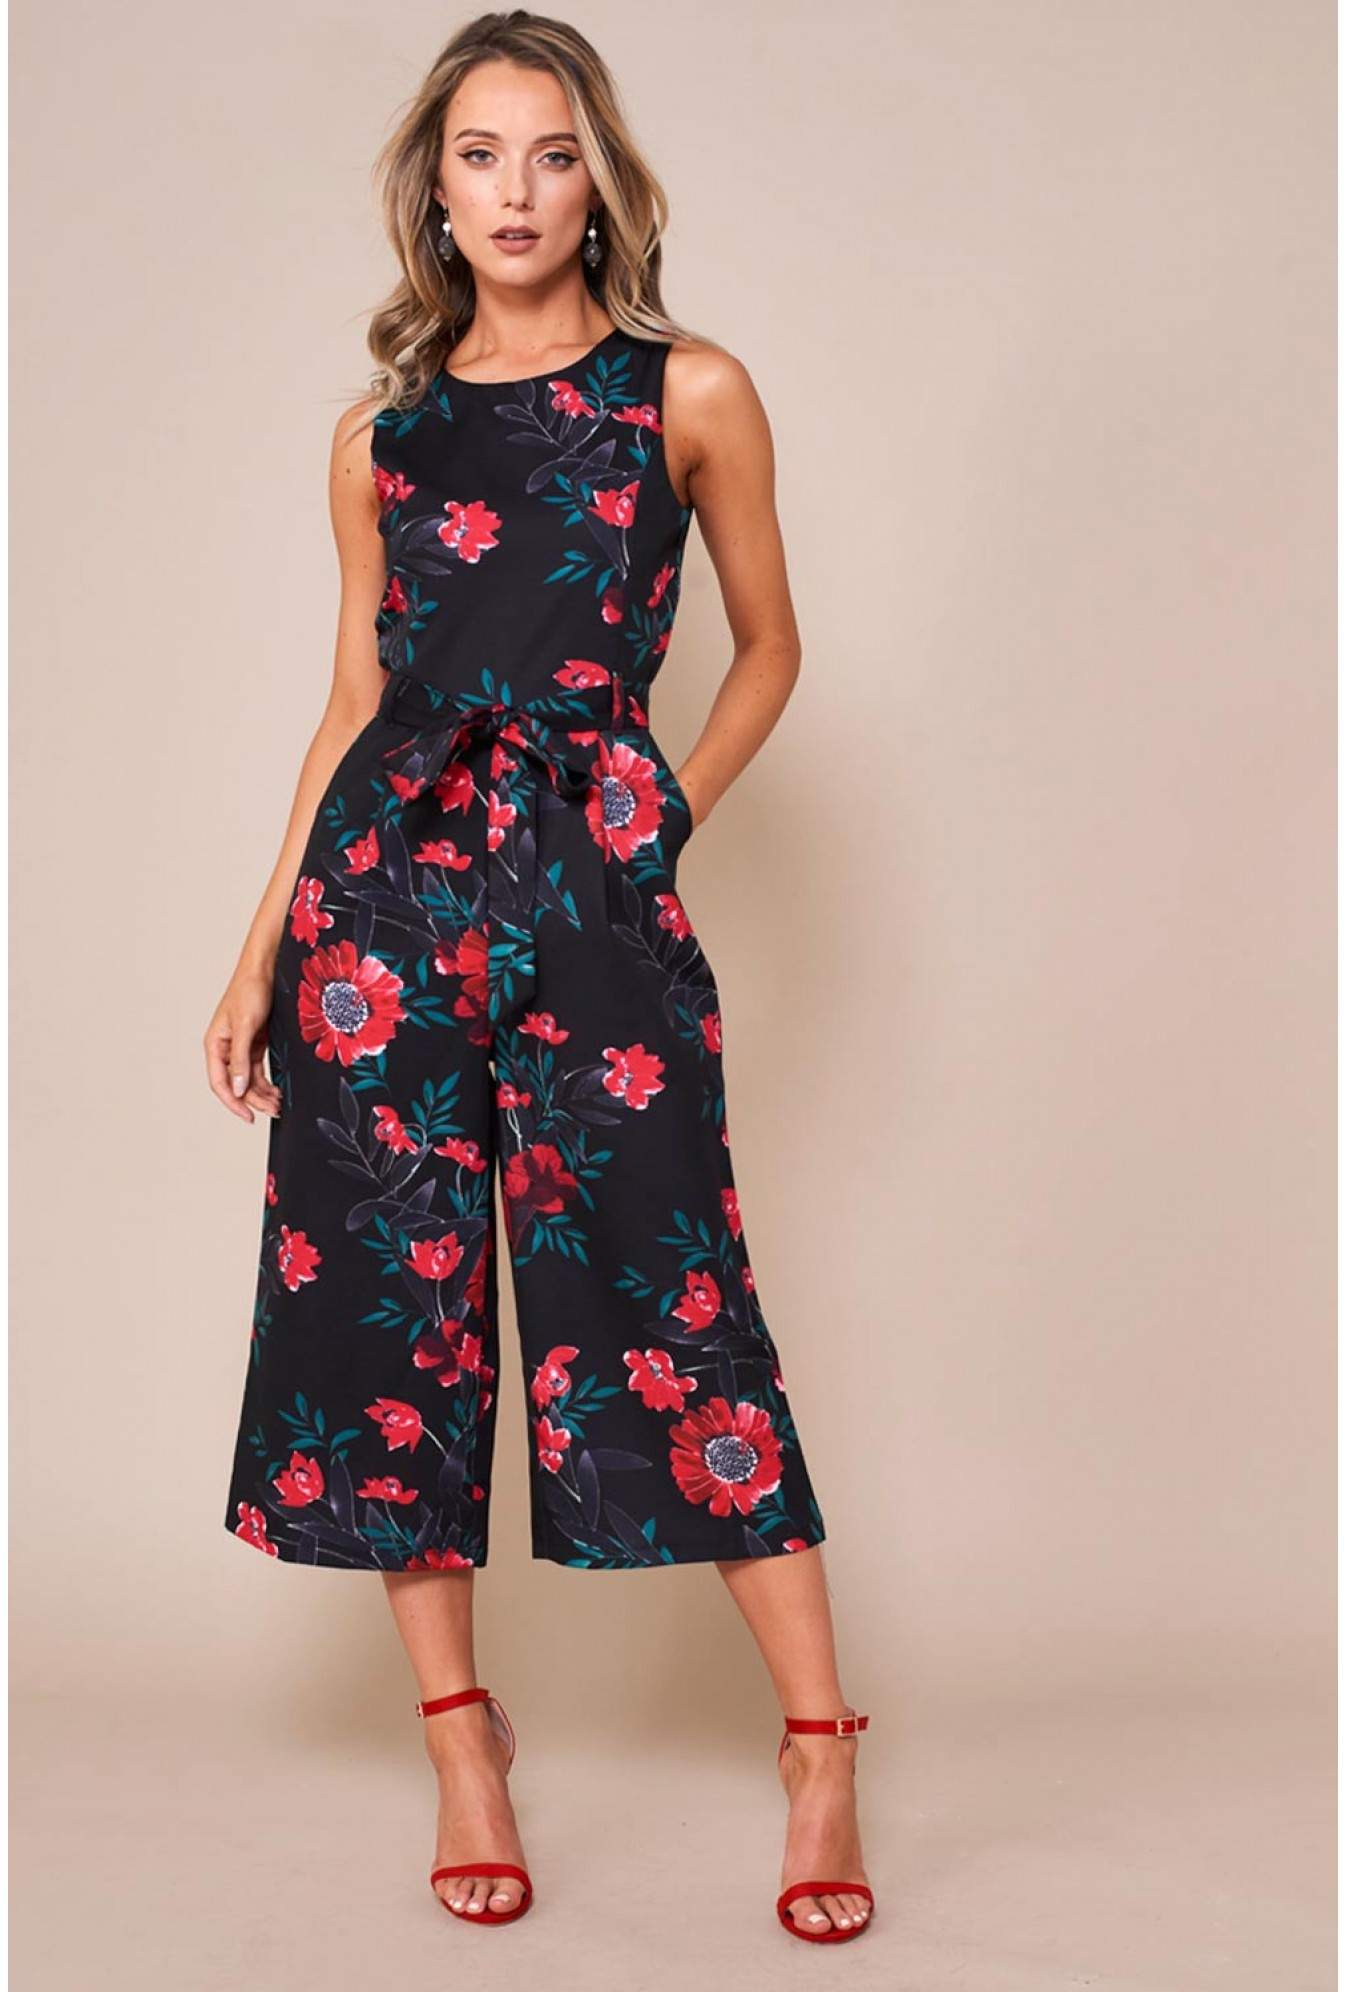 819f75e41dfba Marc Angelo Katie Longline Floral Jumpsuit in Black | iCLOTHING